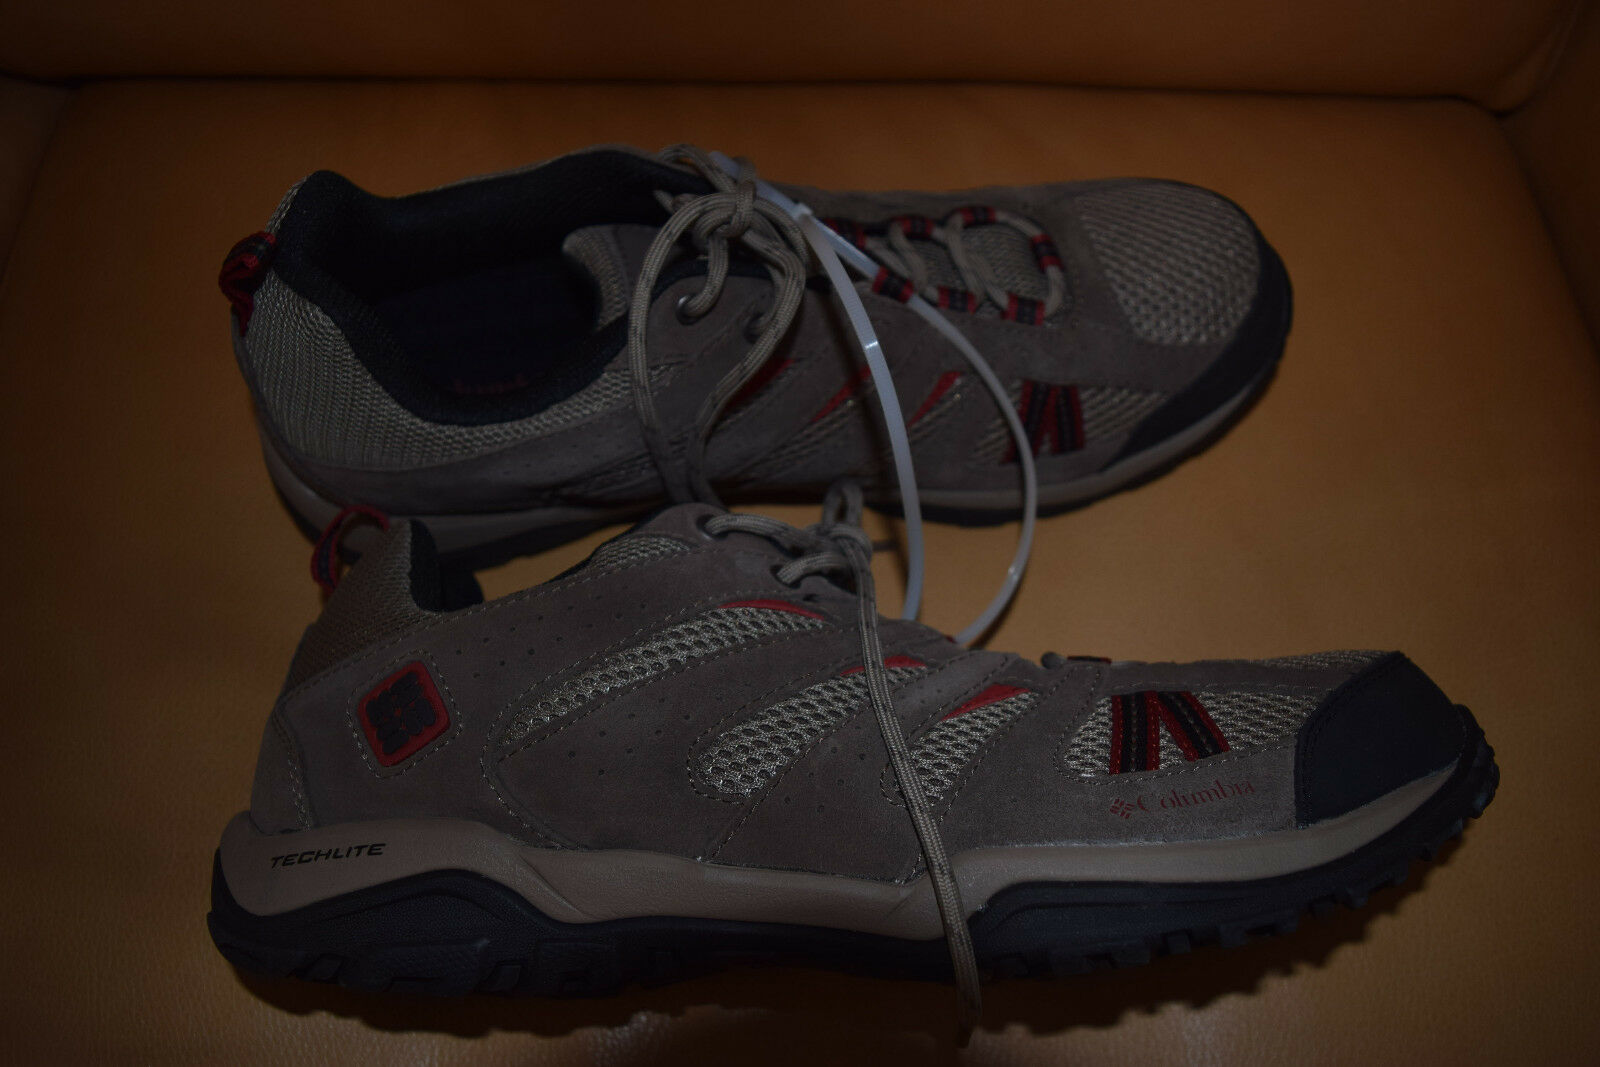 Columbia techlite man's hinking shoes, new without box, size12, color  brown